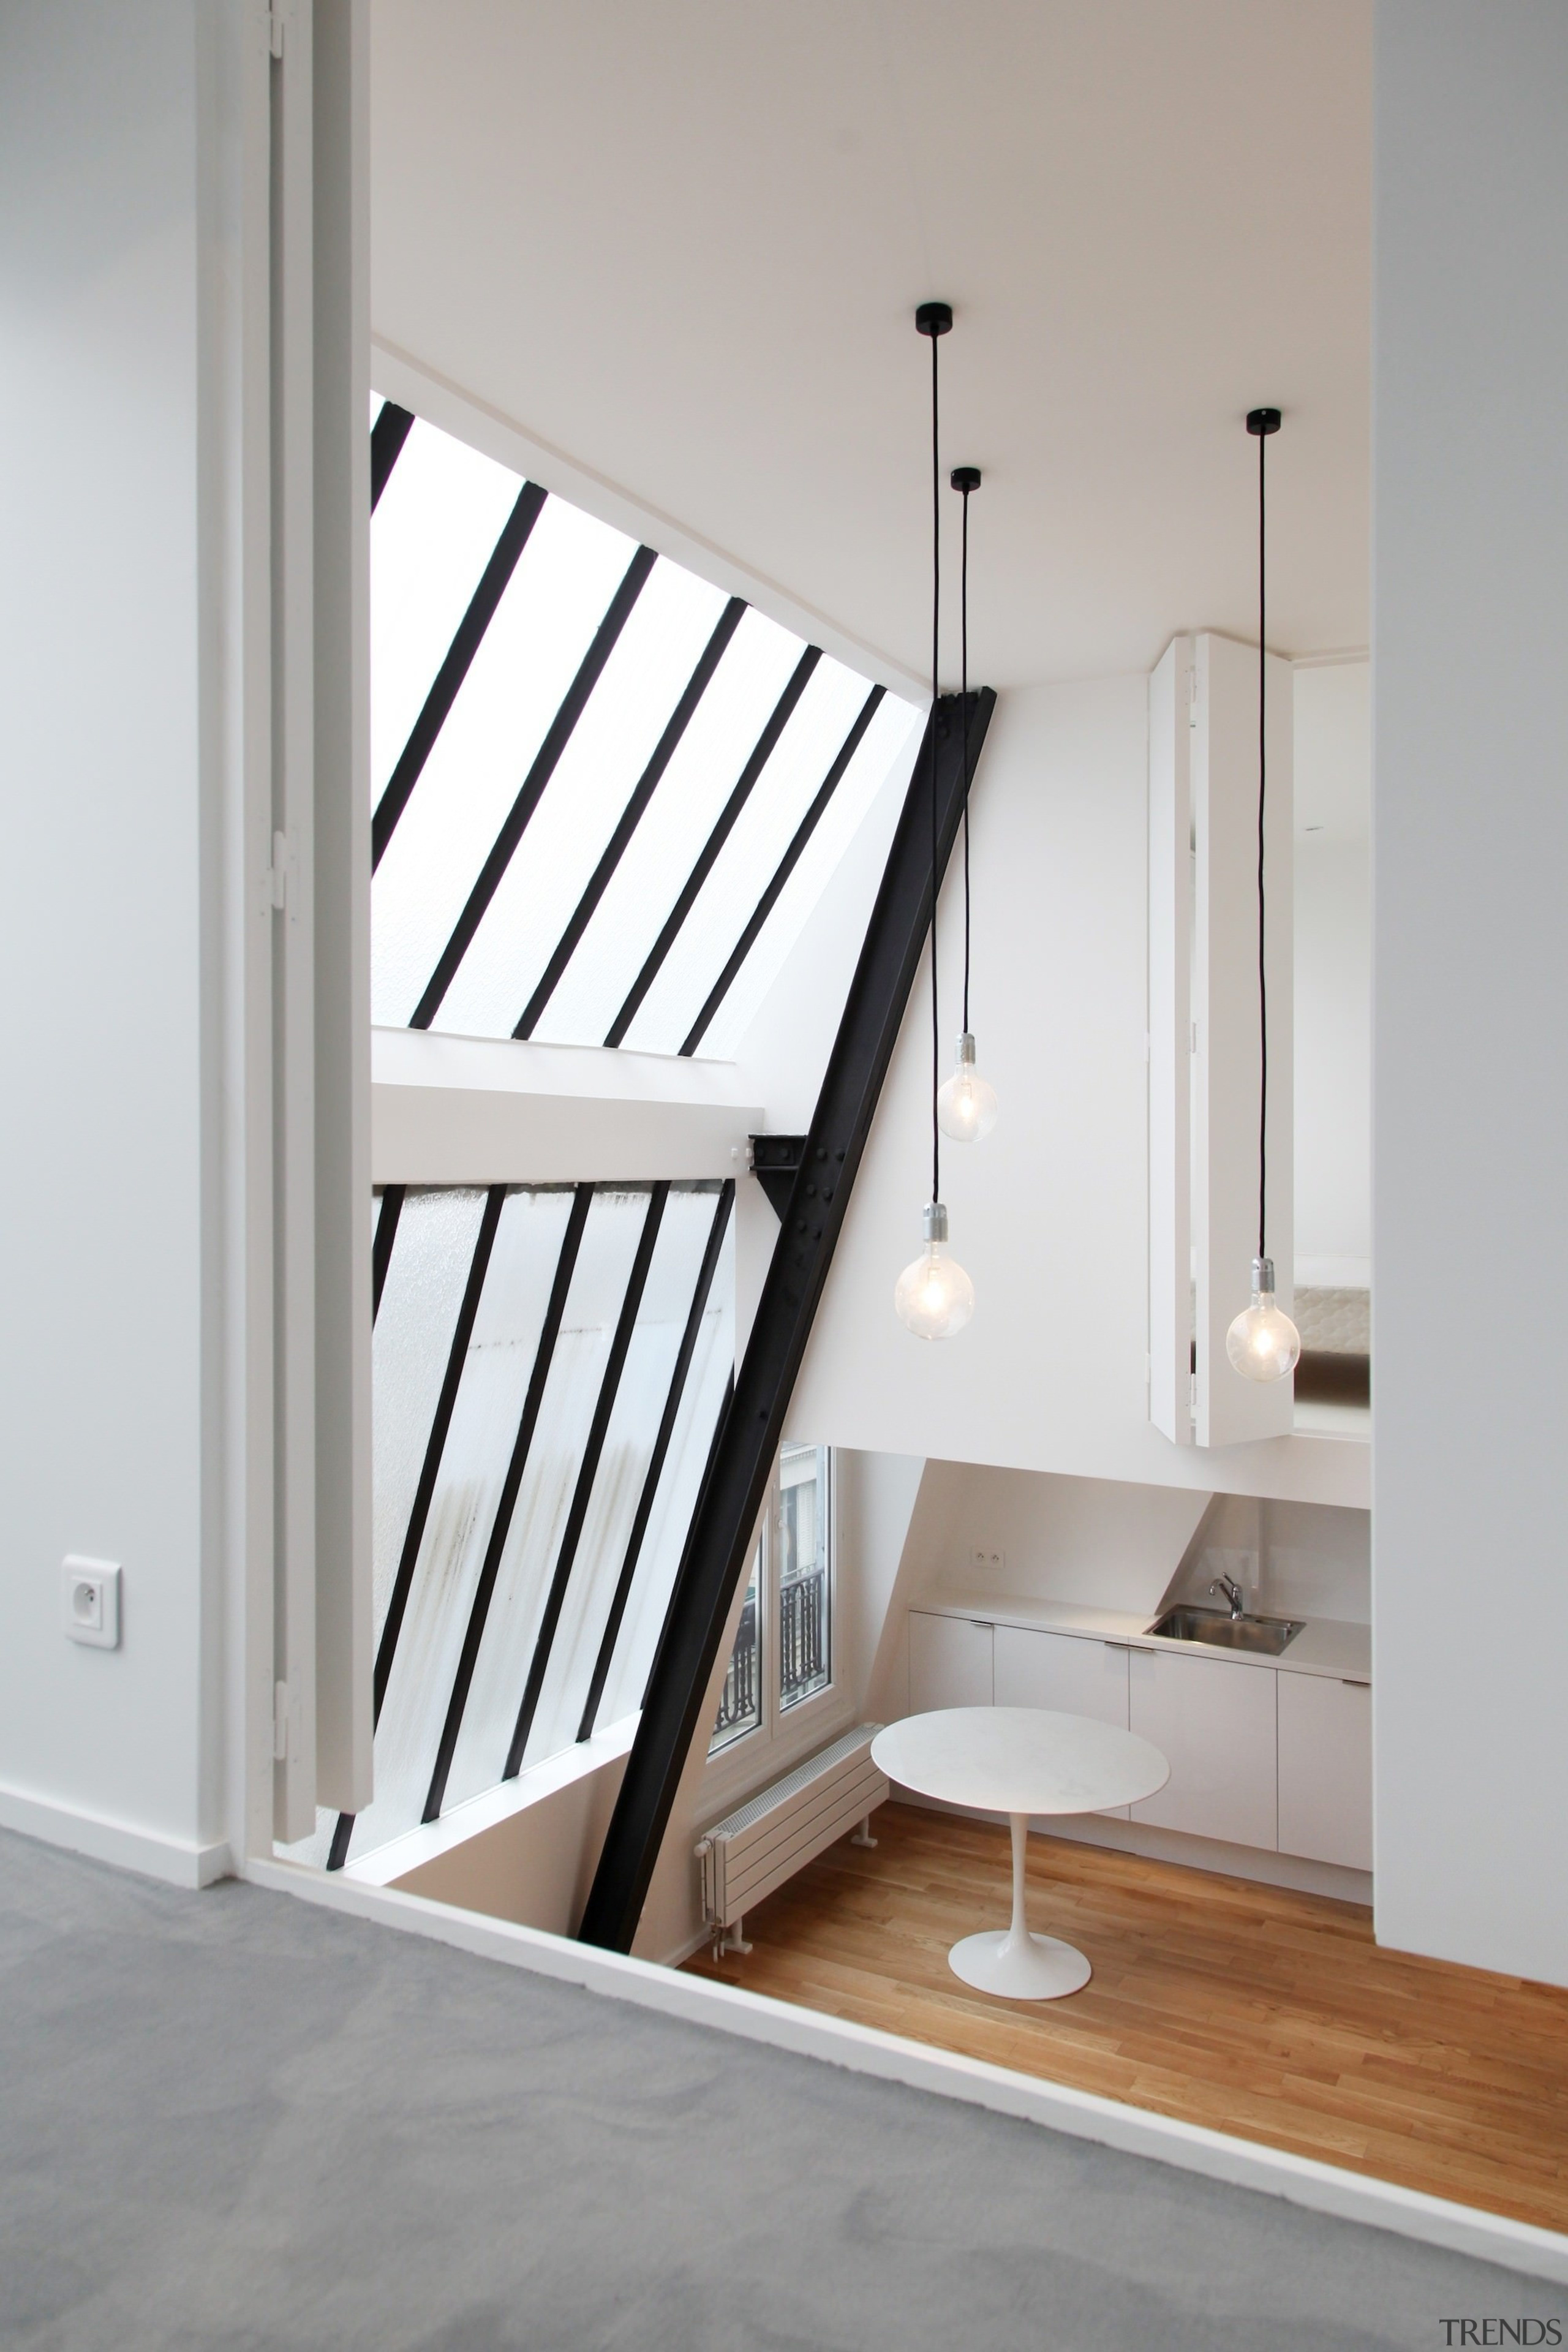 Architect: jbmn architectesPhotographer: Hermann Wendler architecture, bed, bed frame, daylighting, floor, furniture, handrail, home, house, interior design, product, stairs, window, wood, gray, white